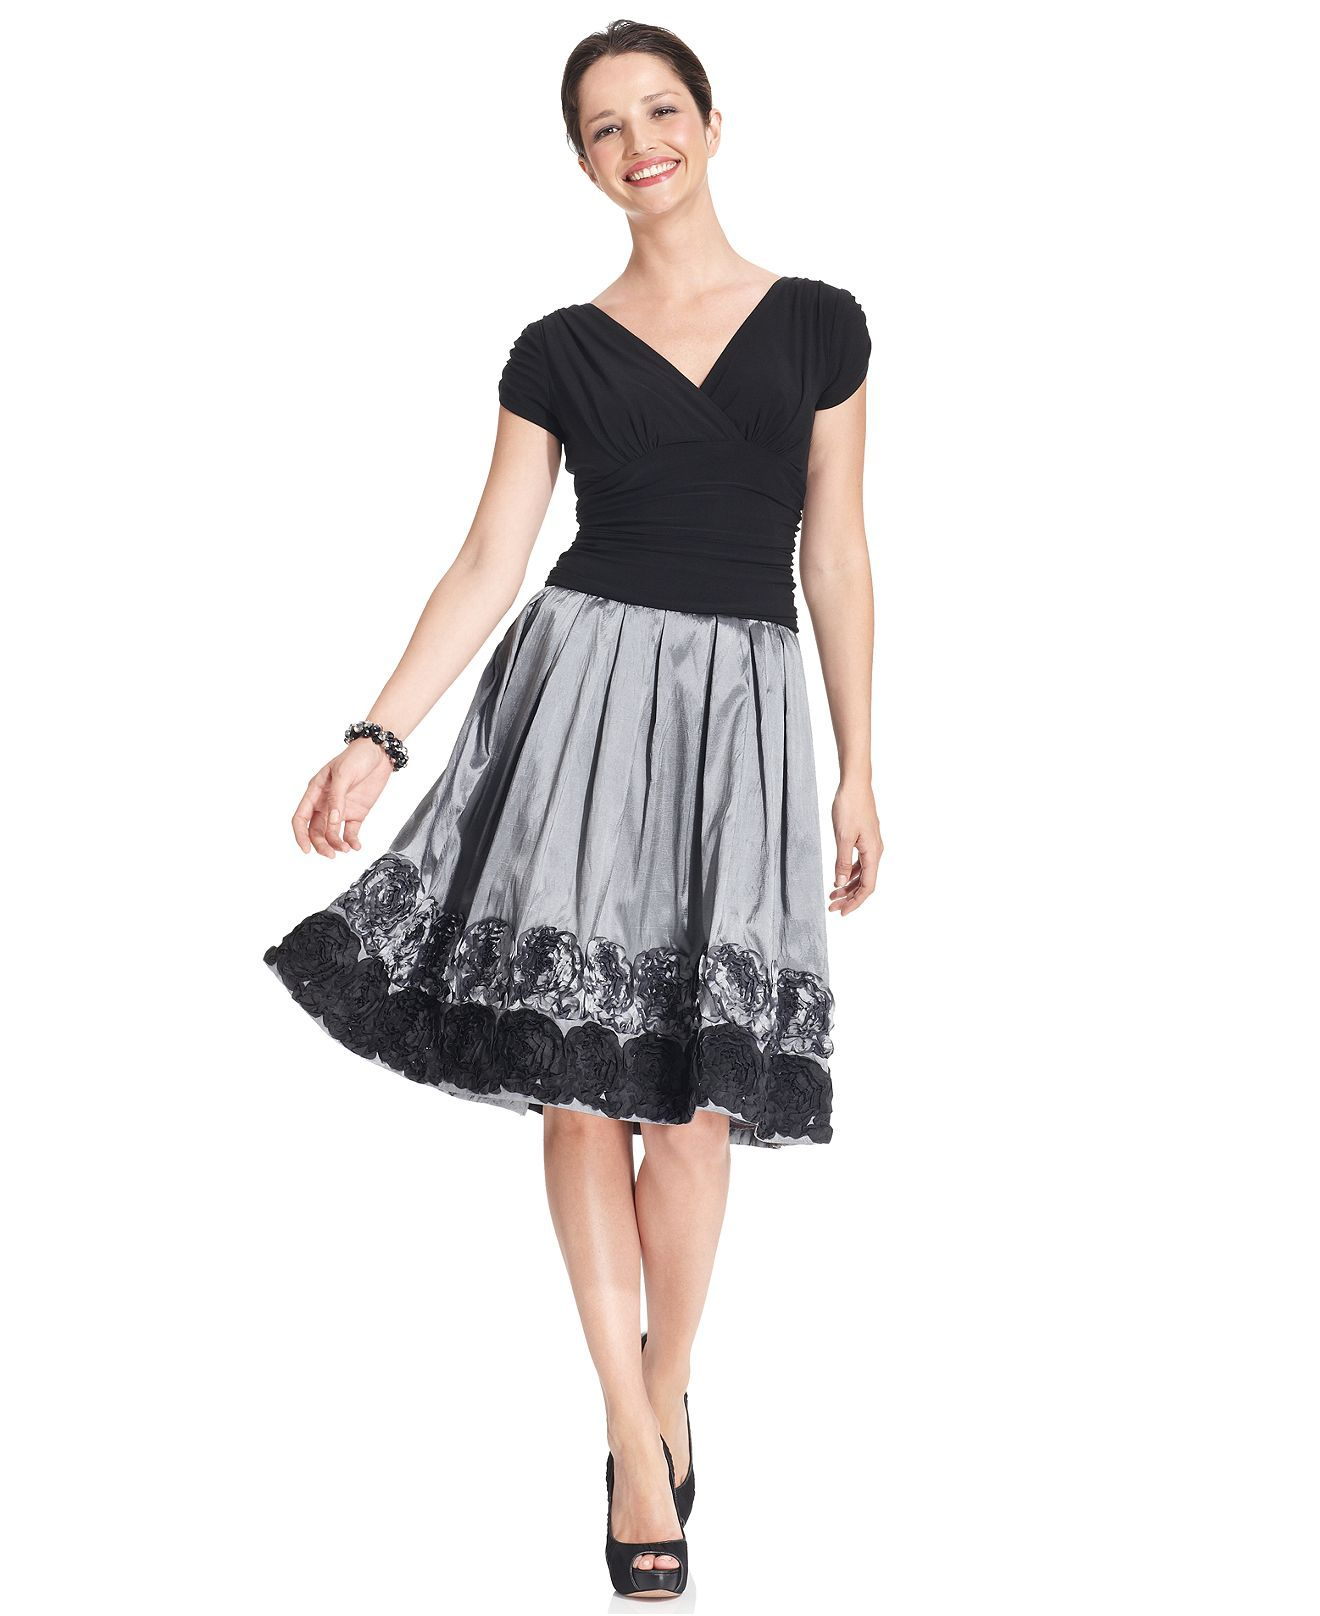 Wedding dresses at macy's  SL Fashions Dress ShortSleeve Ruched ALine  Womens Mother of the